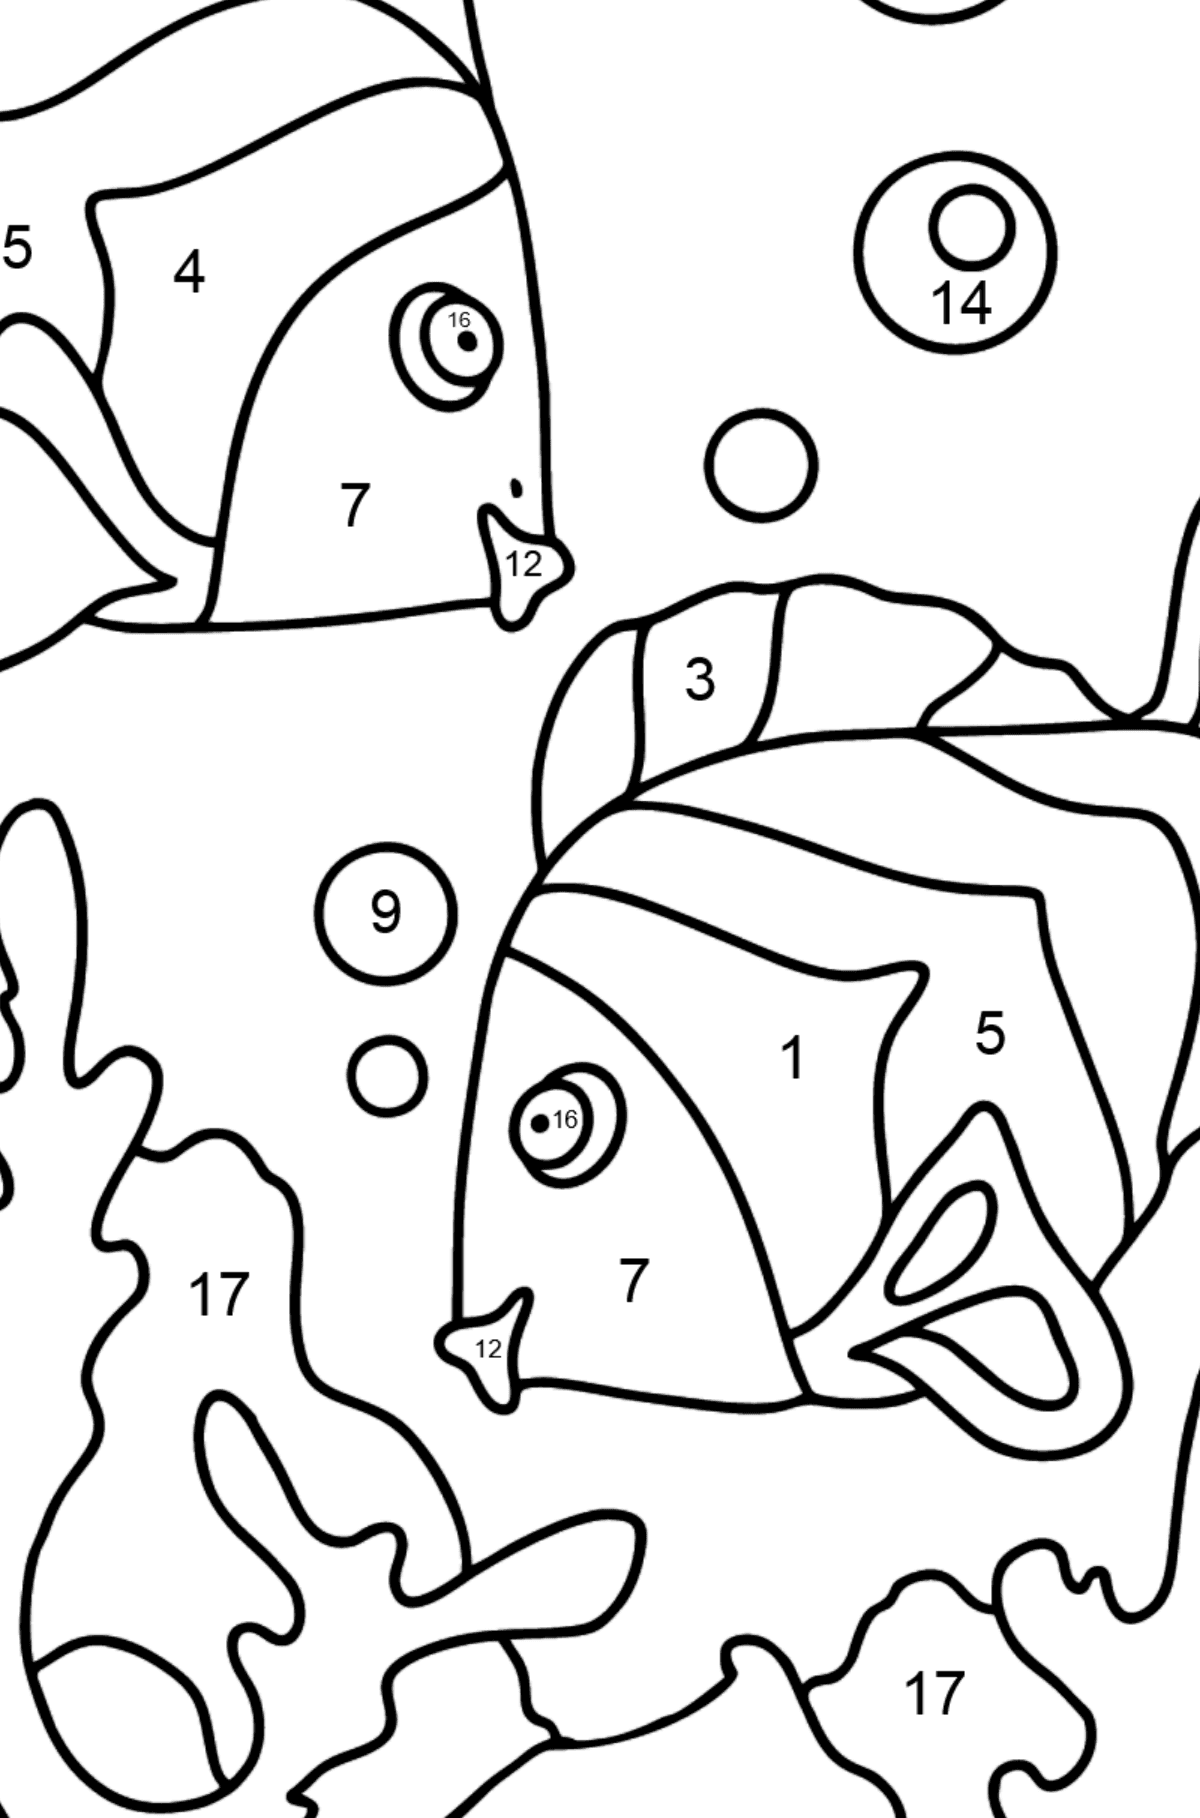 Coloring Page - Fish are Swimming Together - Coloring by Numbers for Kids